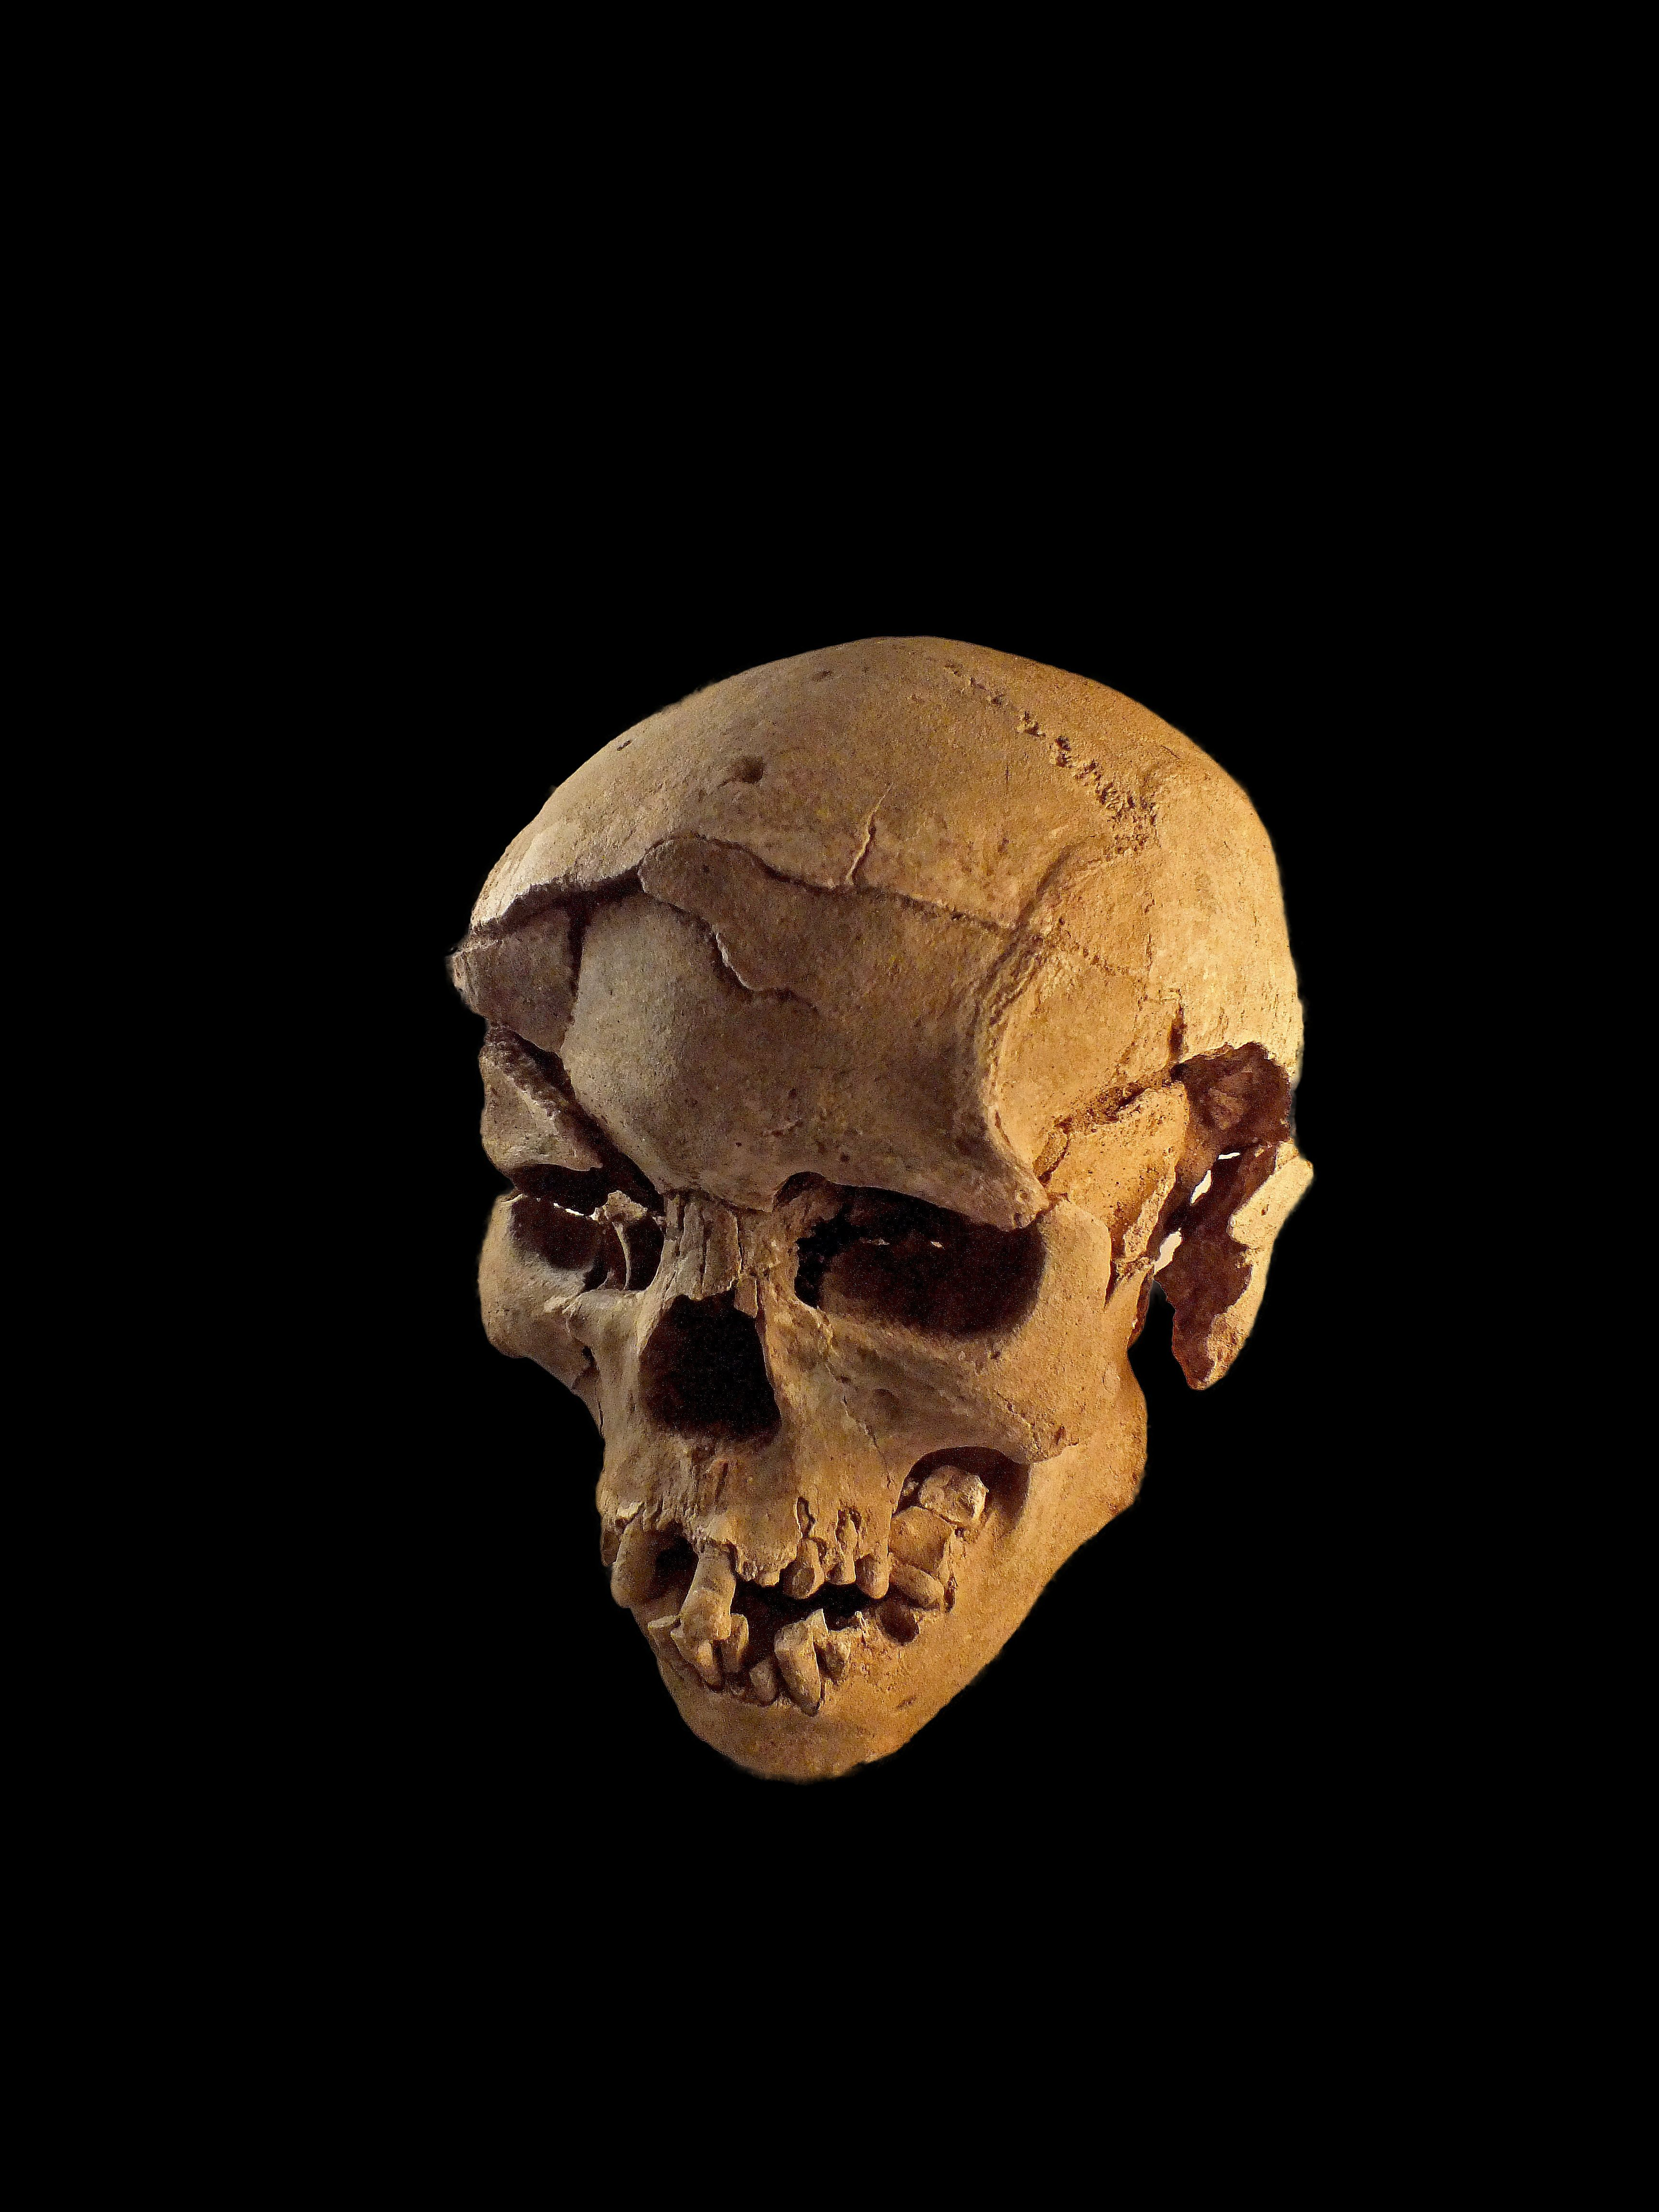 A skull recovered from the Kenya massacre site.